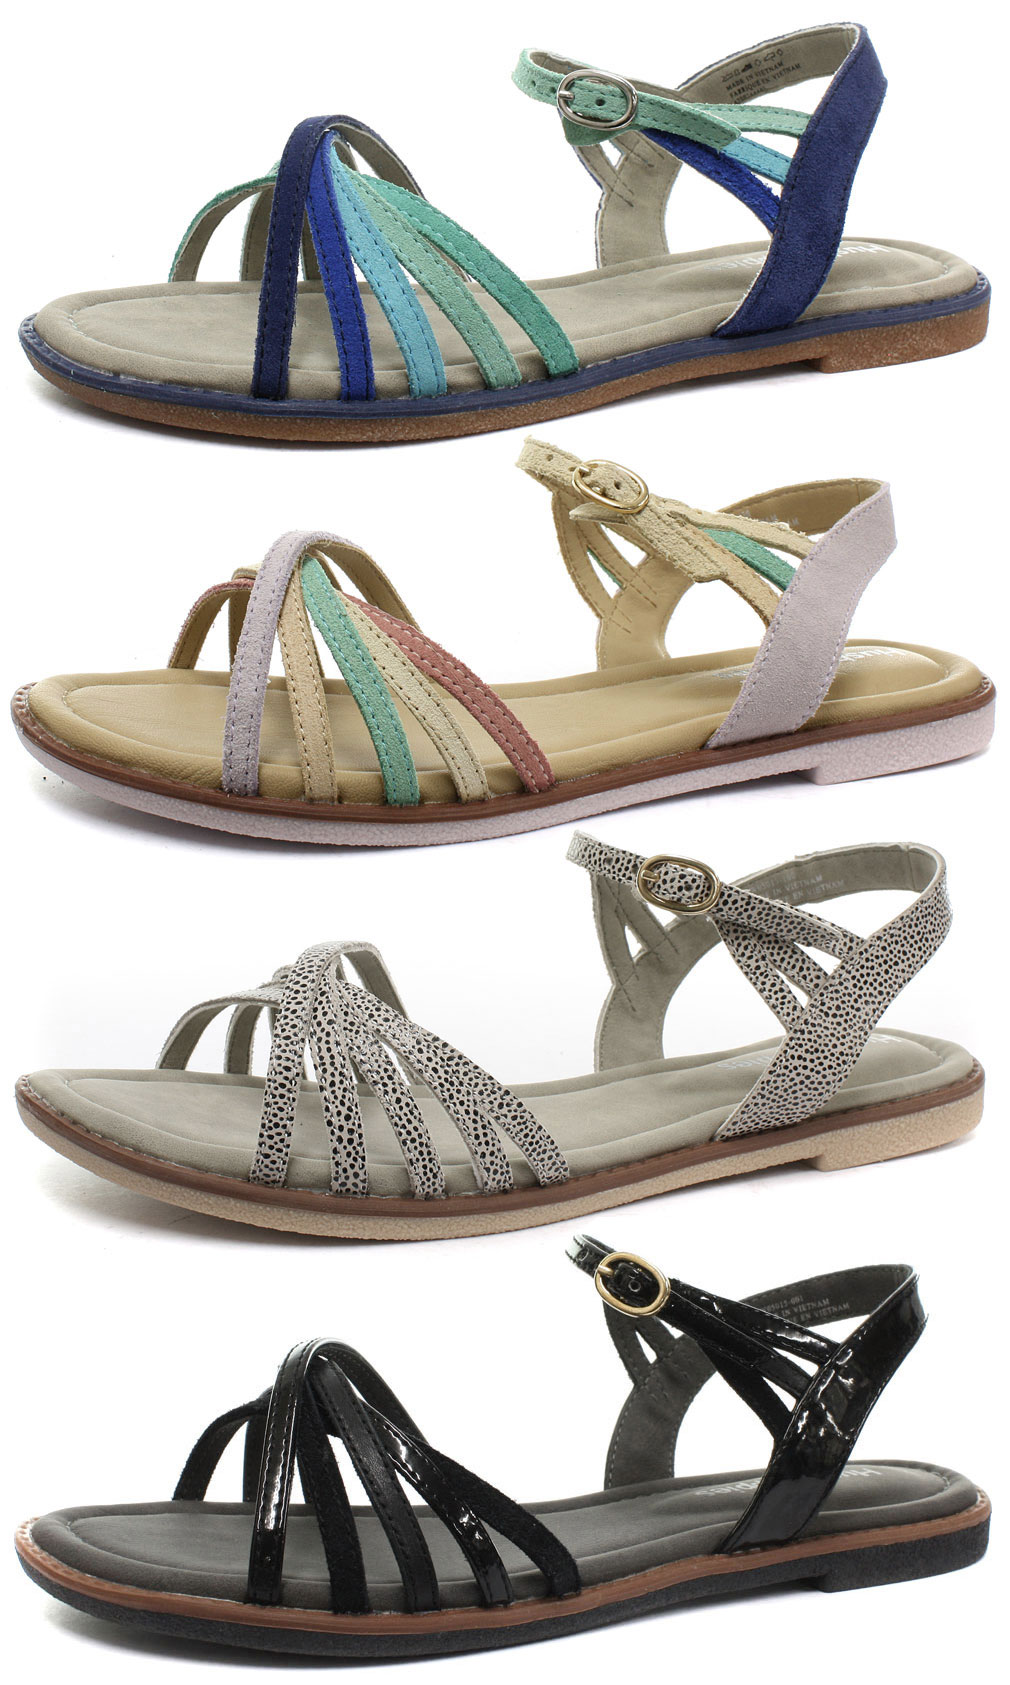 8cb3b7b534710 Image is loading Hush-Puppies-Caposhi-Qtr-Strap-Womens-Sandals-ALL-